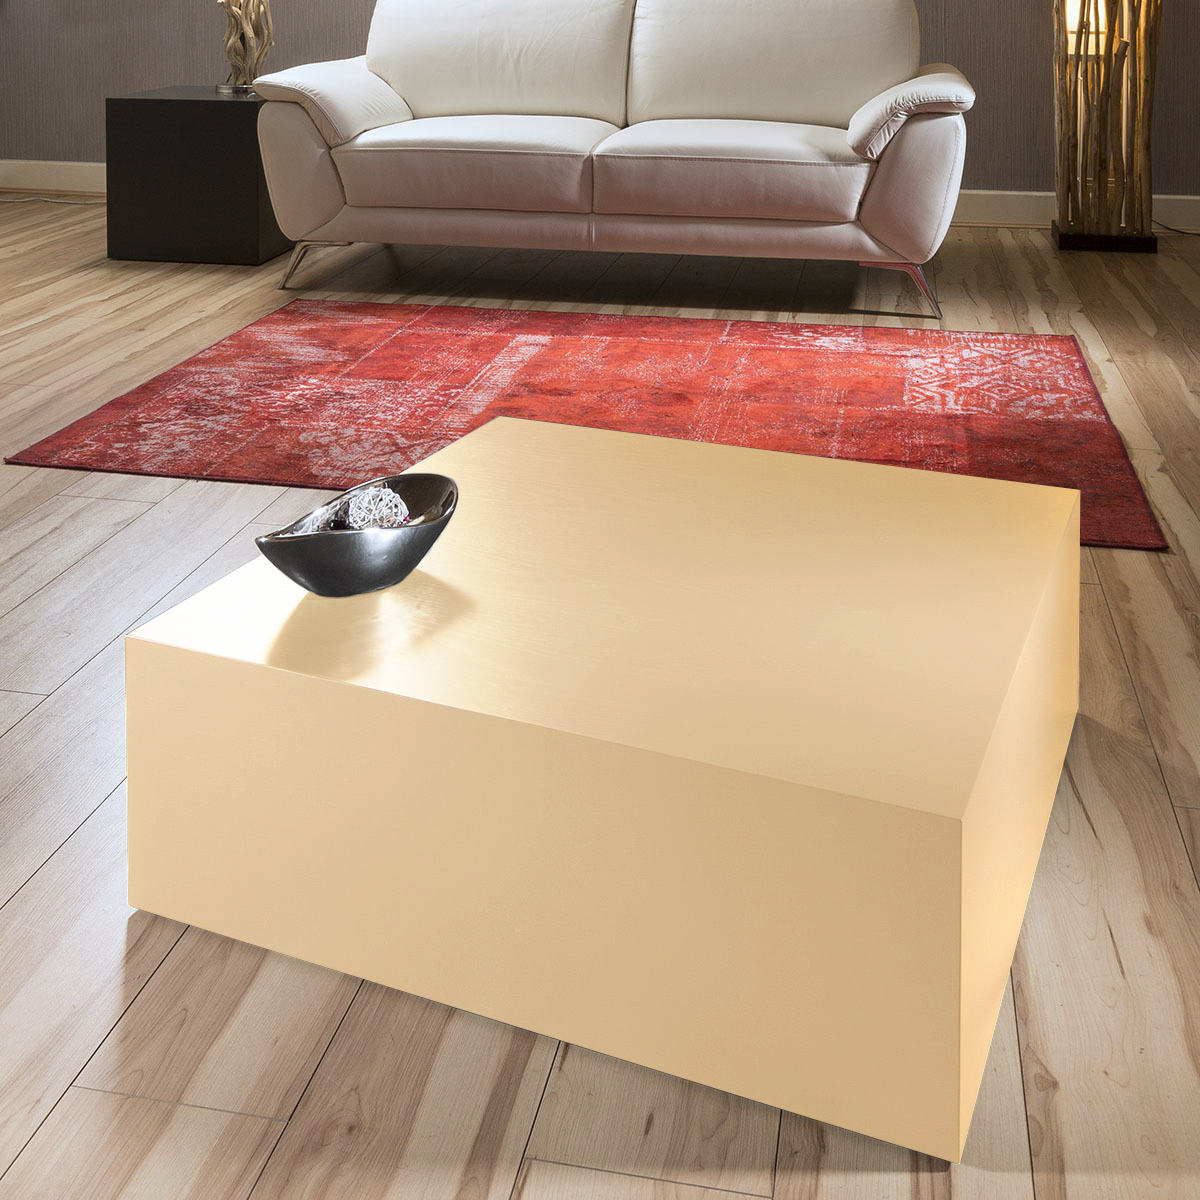 Low Modern Coffee Table: Luxury Modern Low 80x80cm Square Coffee Table Medium Oak